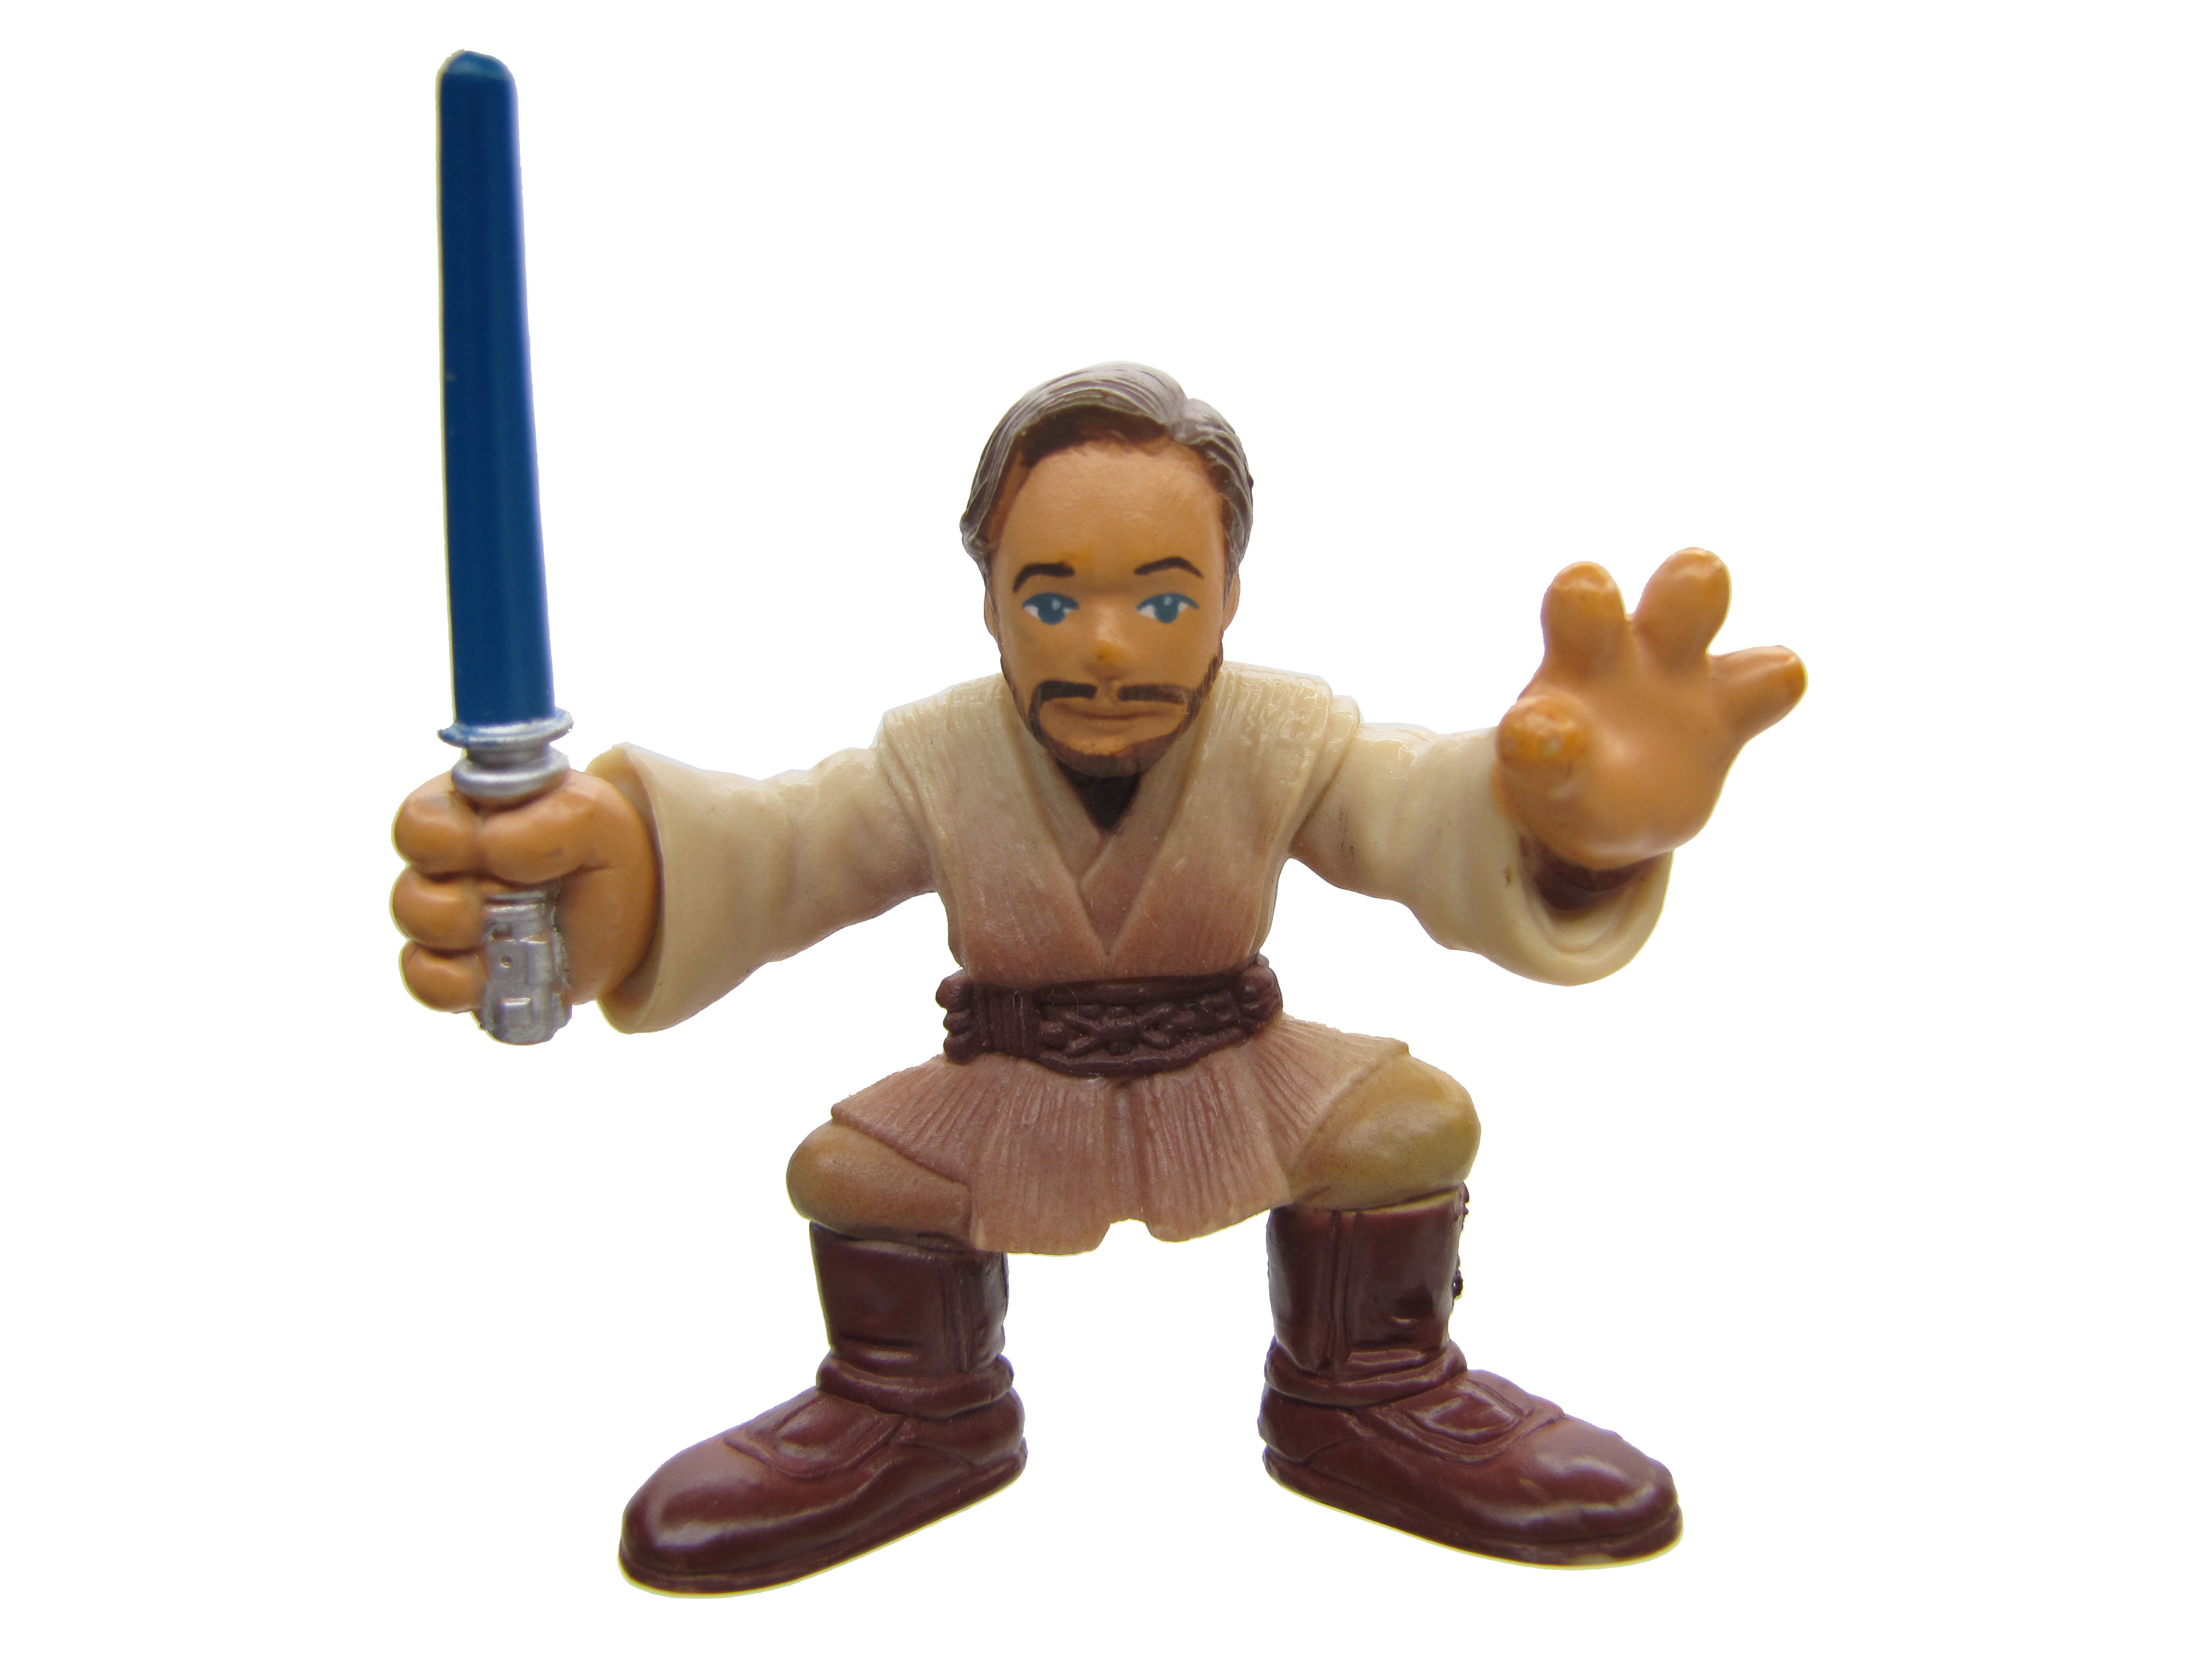 Star Wars Galactic Heroes OBI-WAN KENOBI REVENGE OF THE SITH